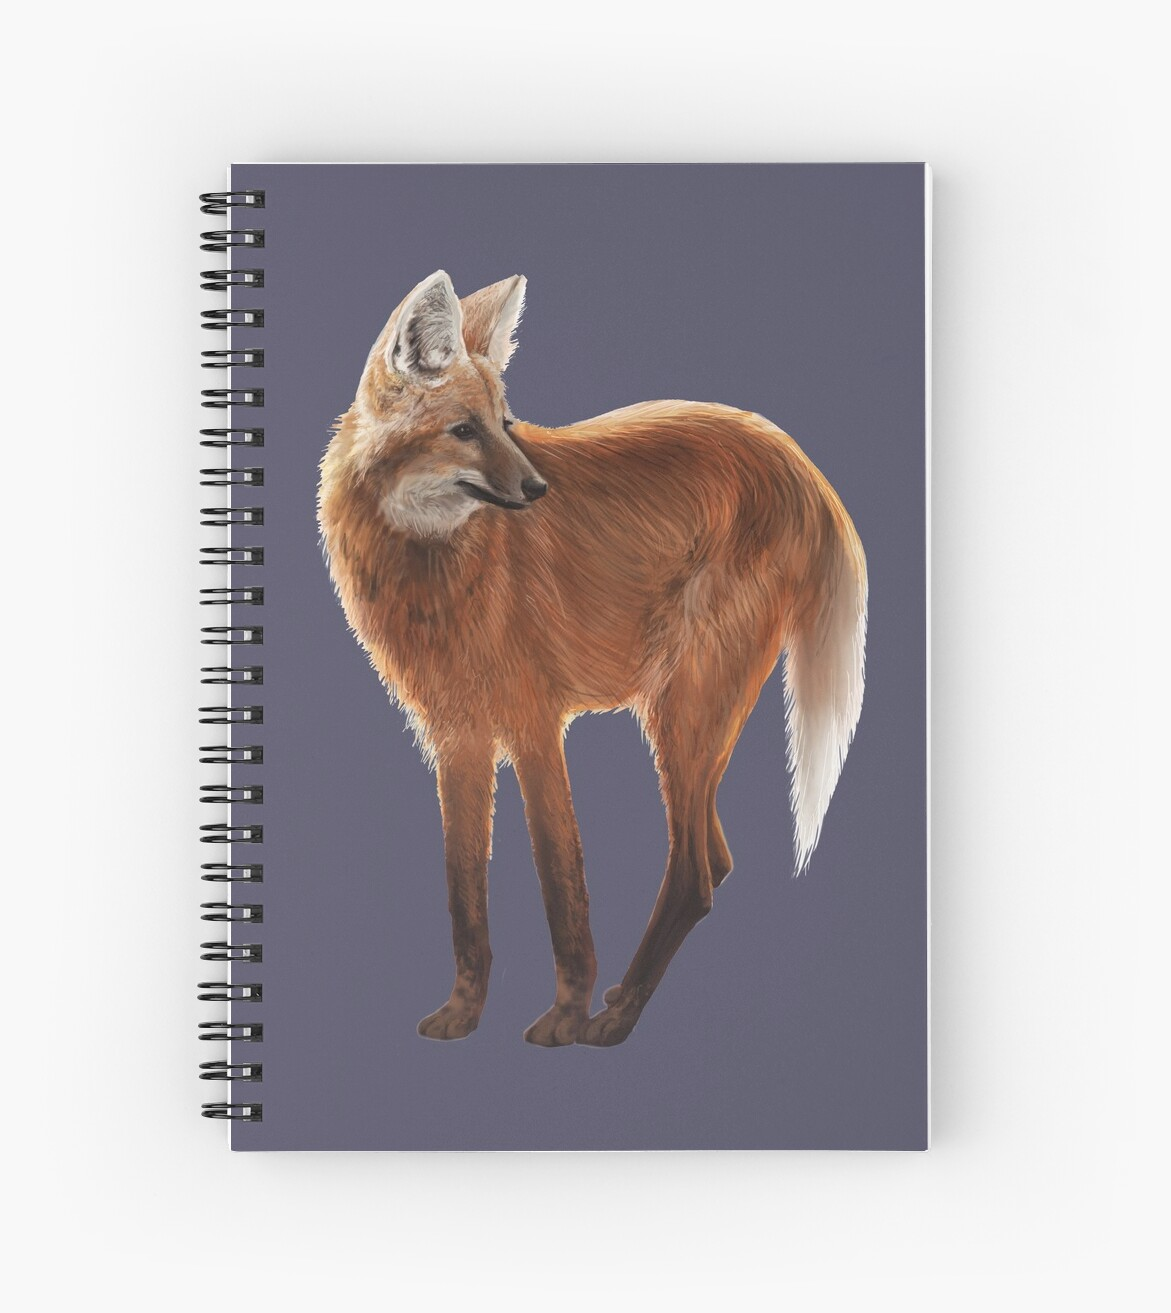 Maned Wolf Illustration by Audrey Howell